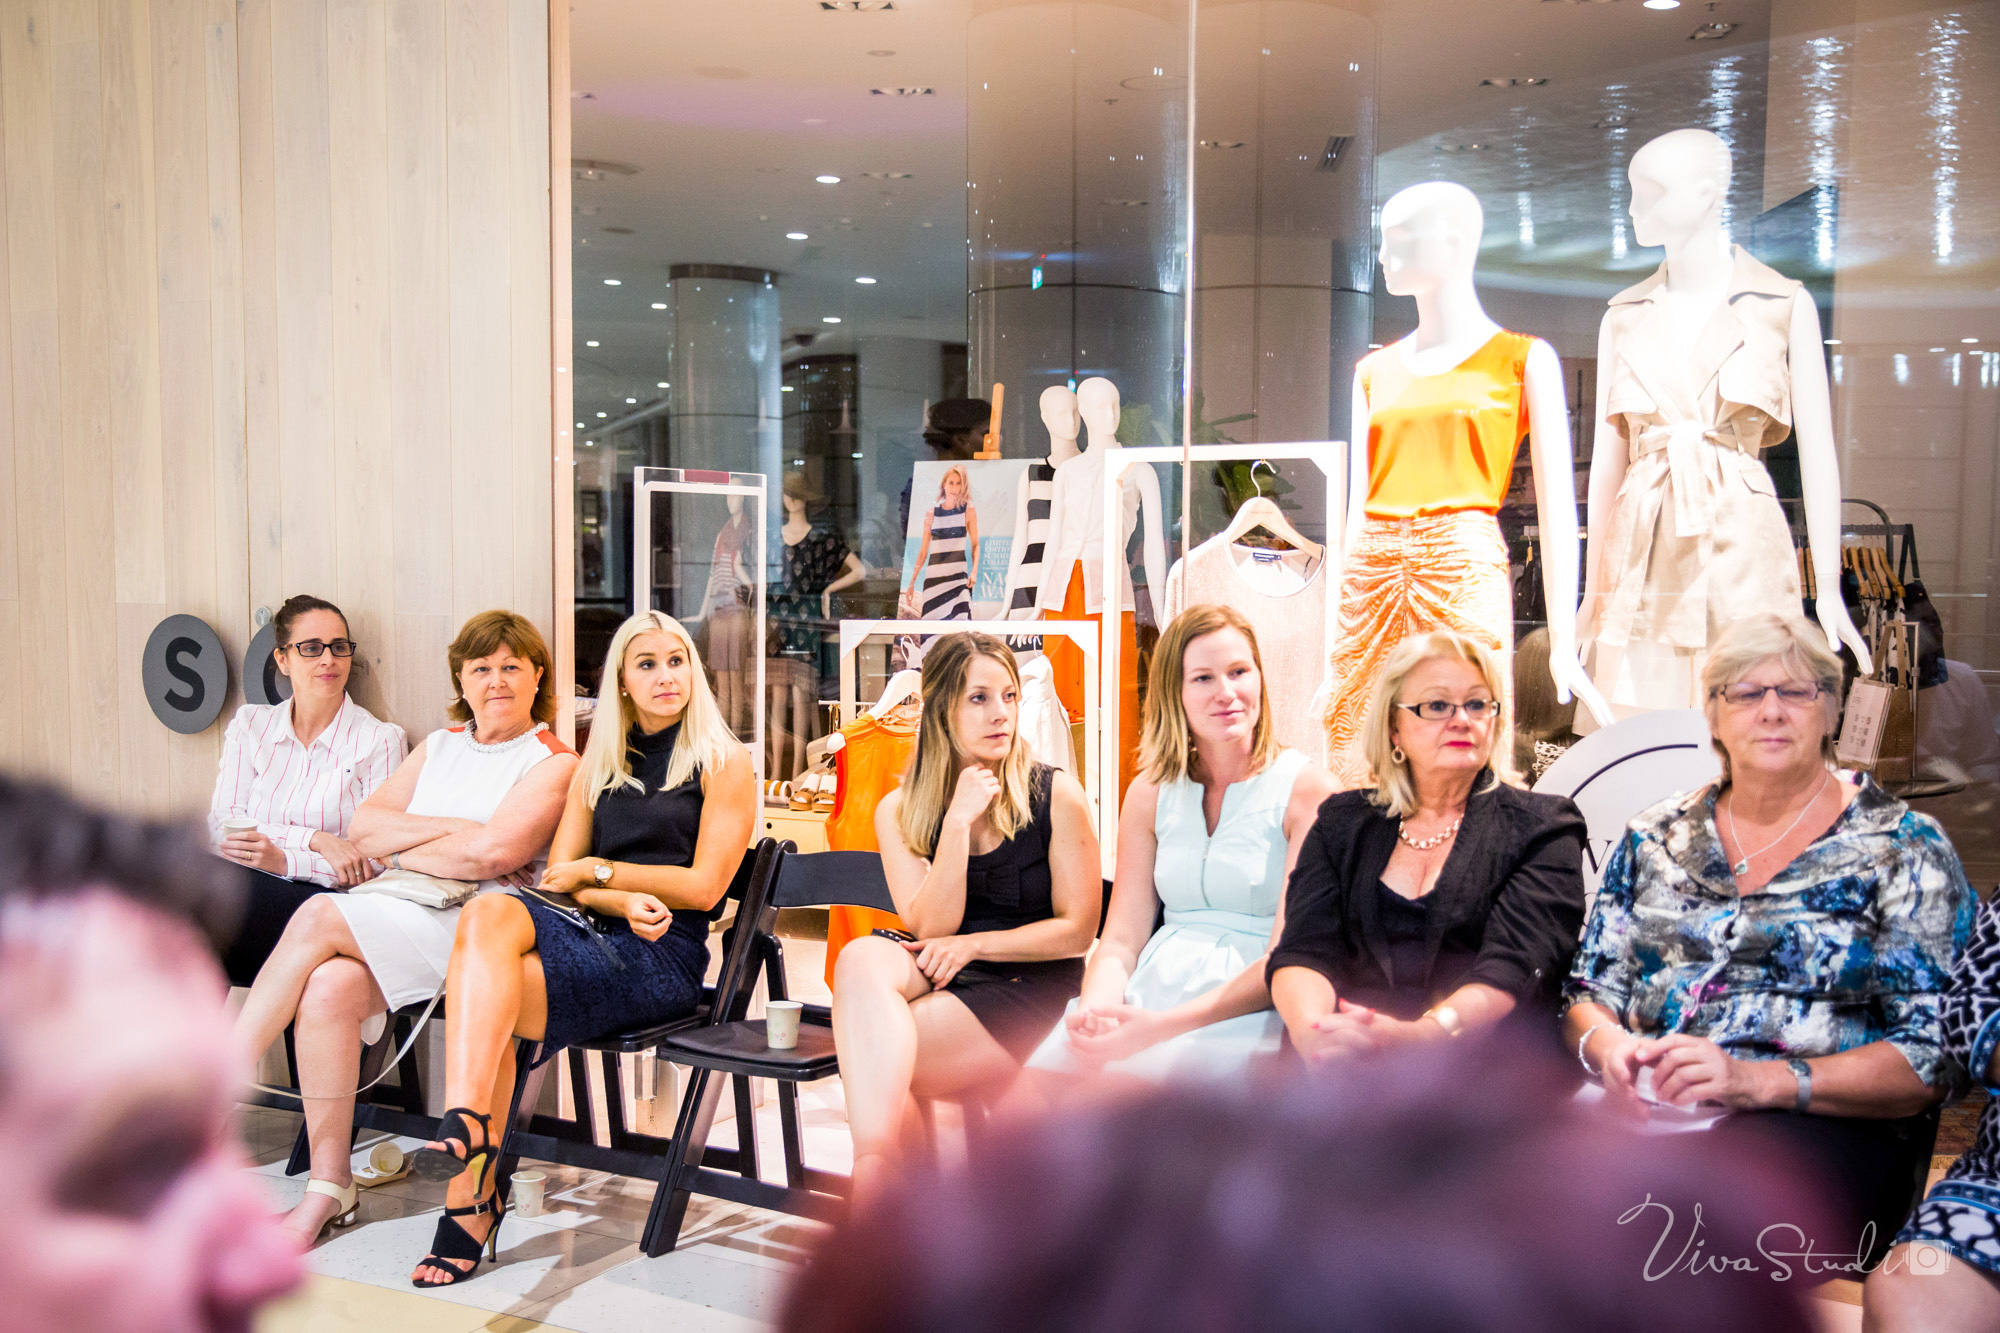 VivaStudio_Design_Photograpphy_Brisbane_Event_Fashionable_20151105_0143